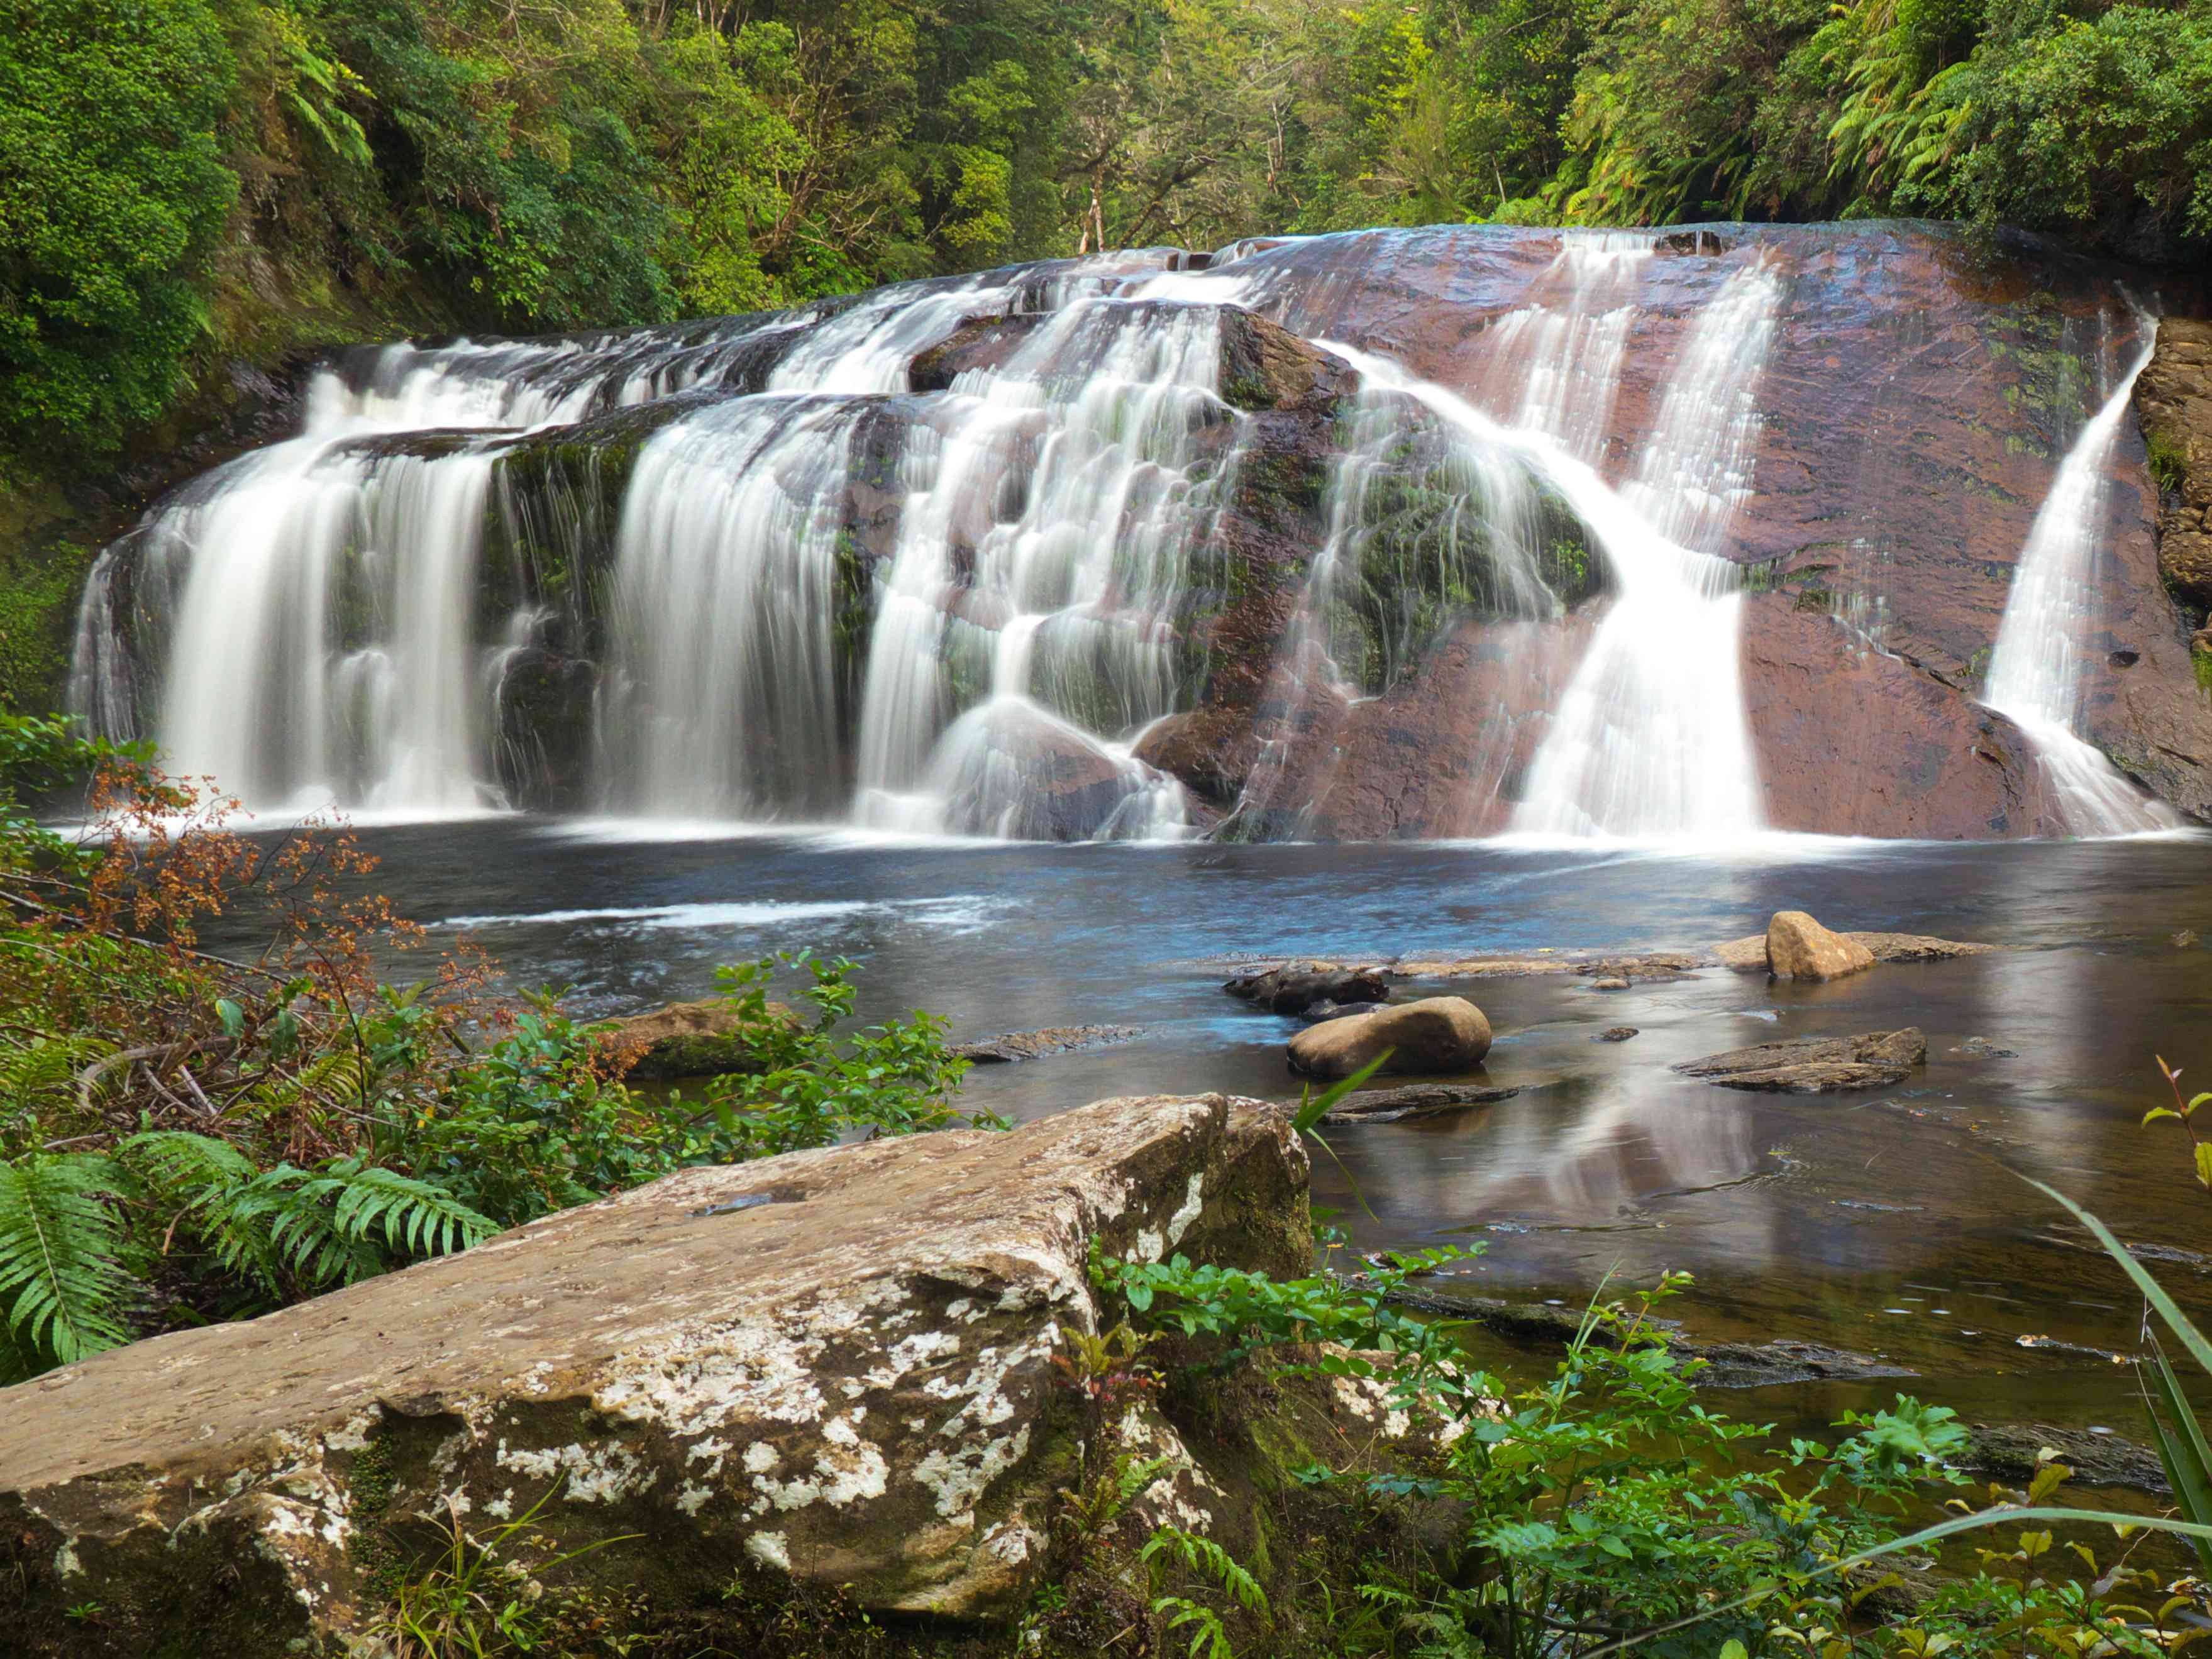 tiered waterfalls falling into a pool surrounded by green shrubs